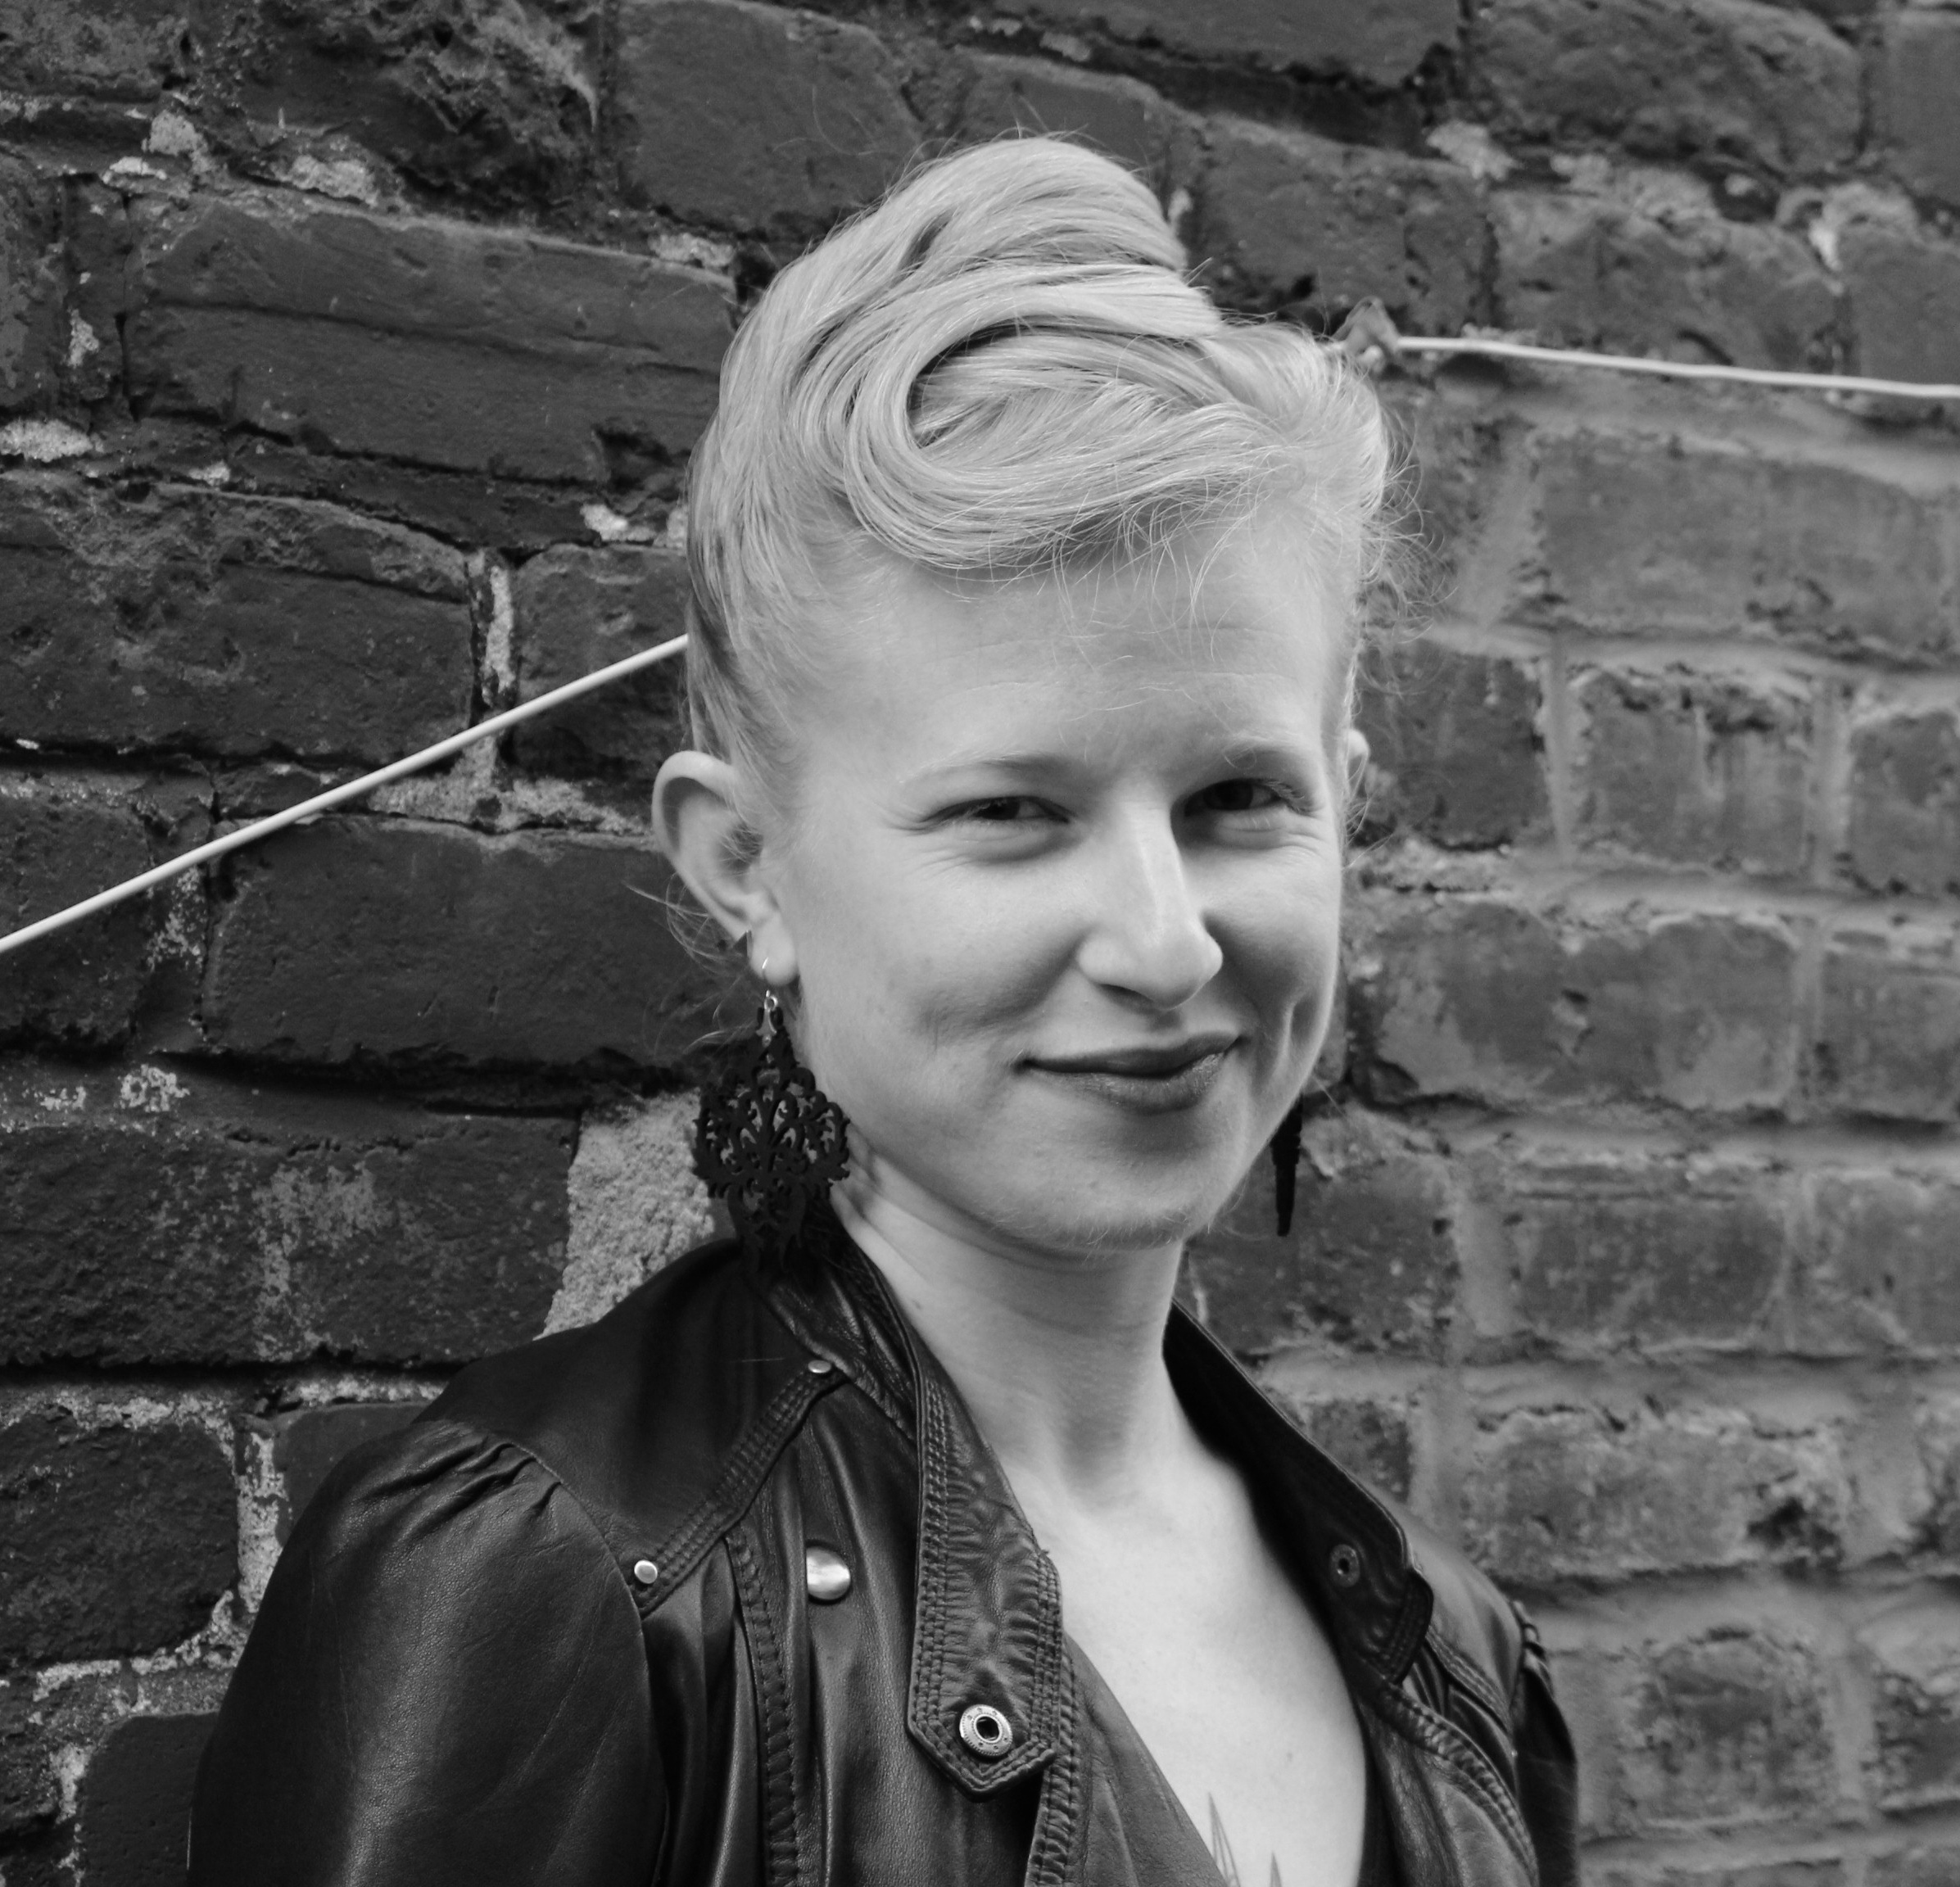 [image description: b&w photo of hannah harris-sutro, a white femme with dimples and pinned-up blonde hair in a leather jacket, smiling in front of a brick wall. photo by sj vriend.]